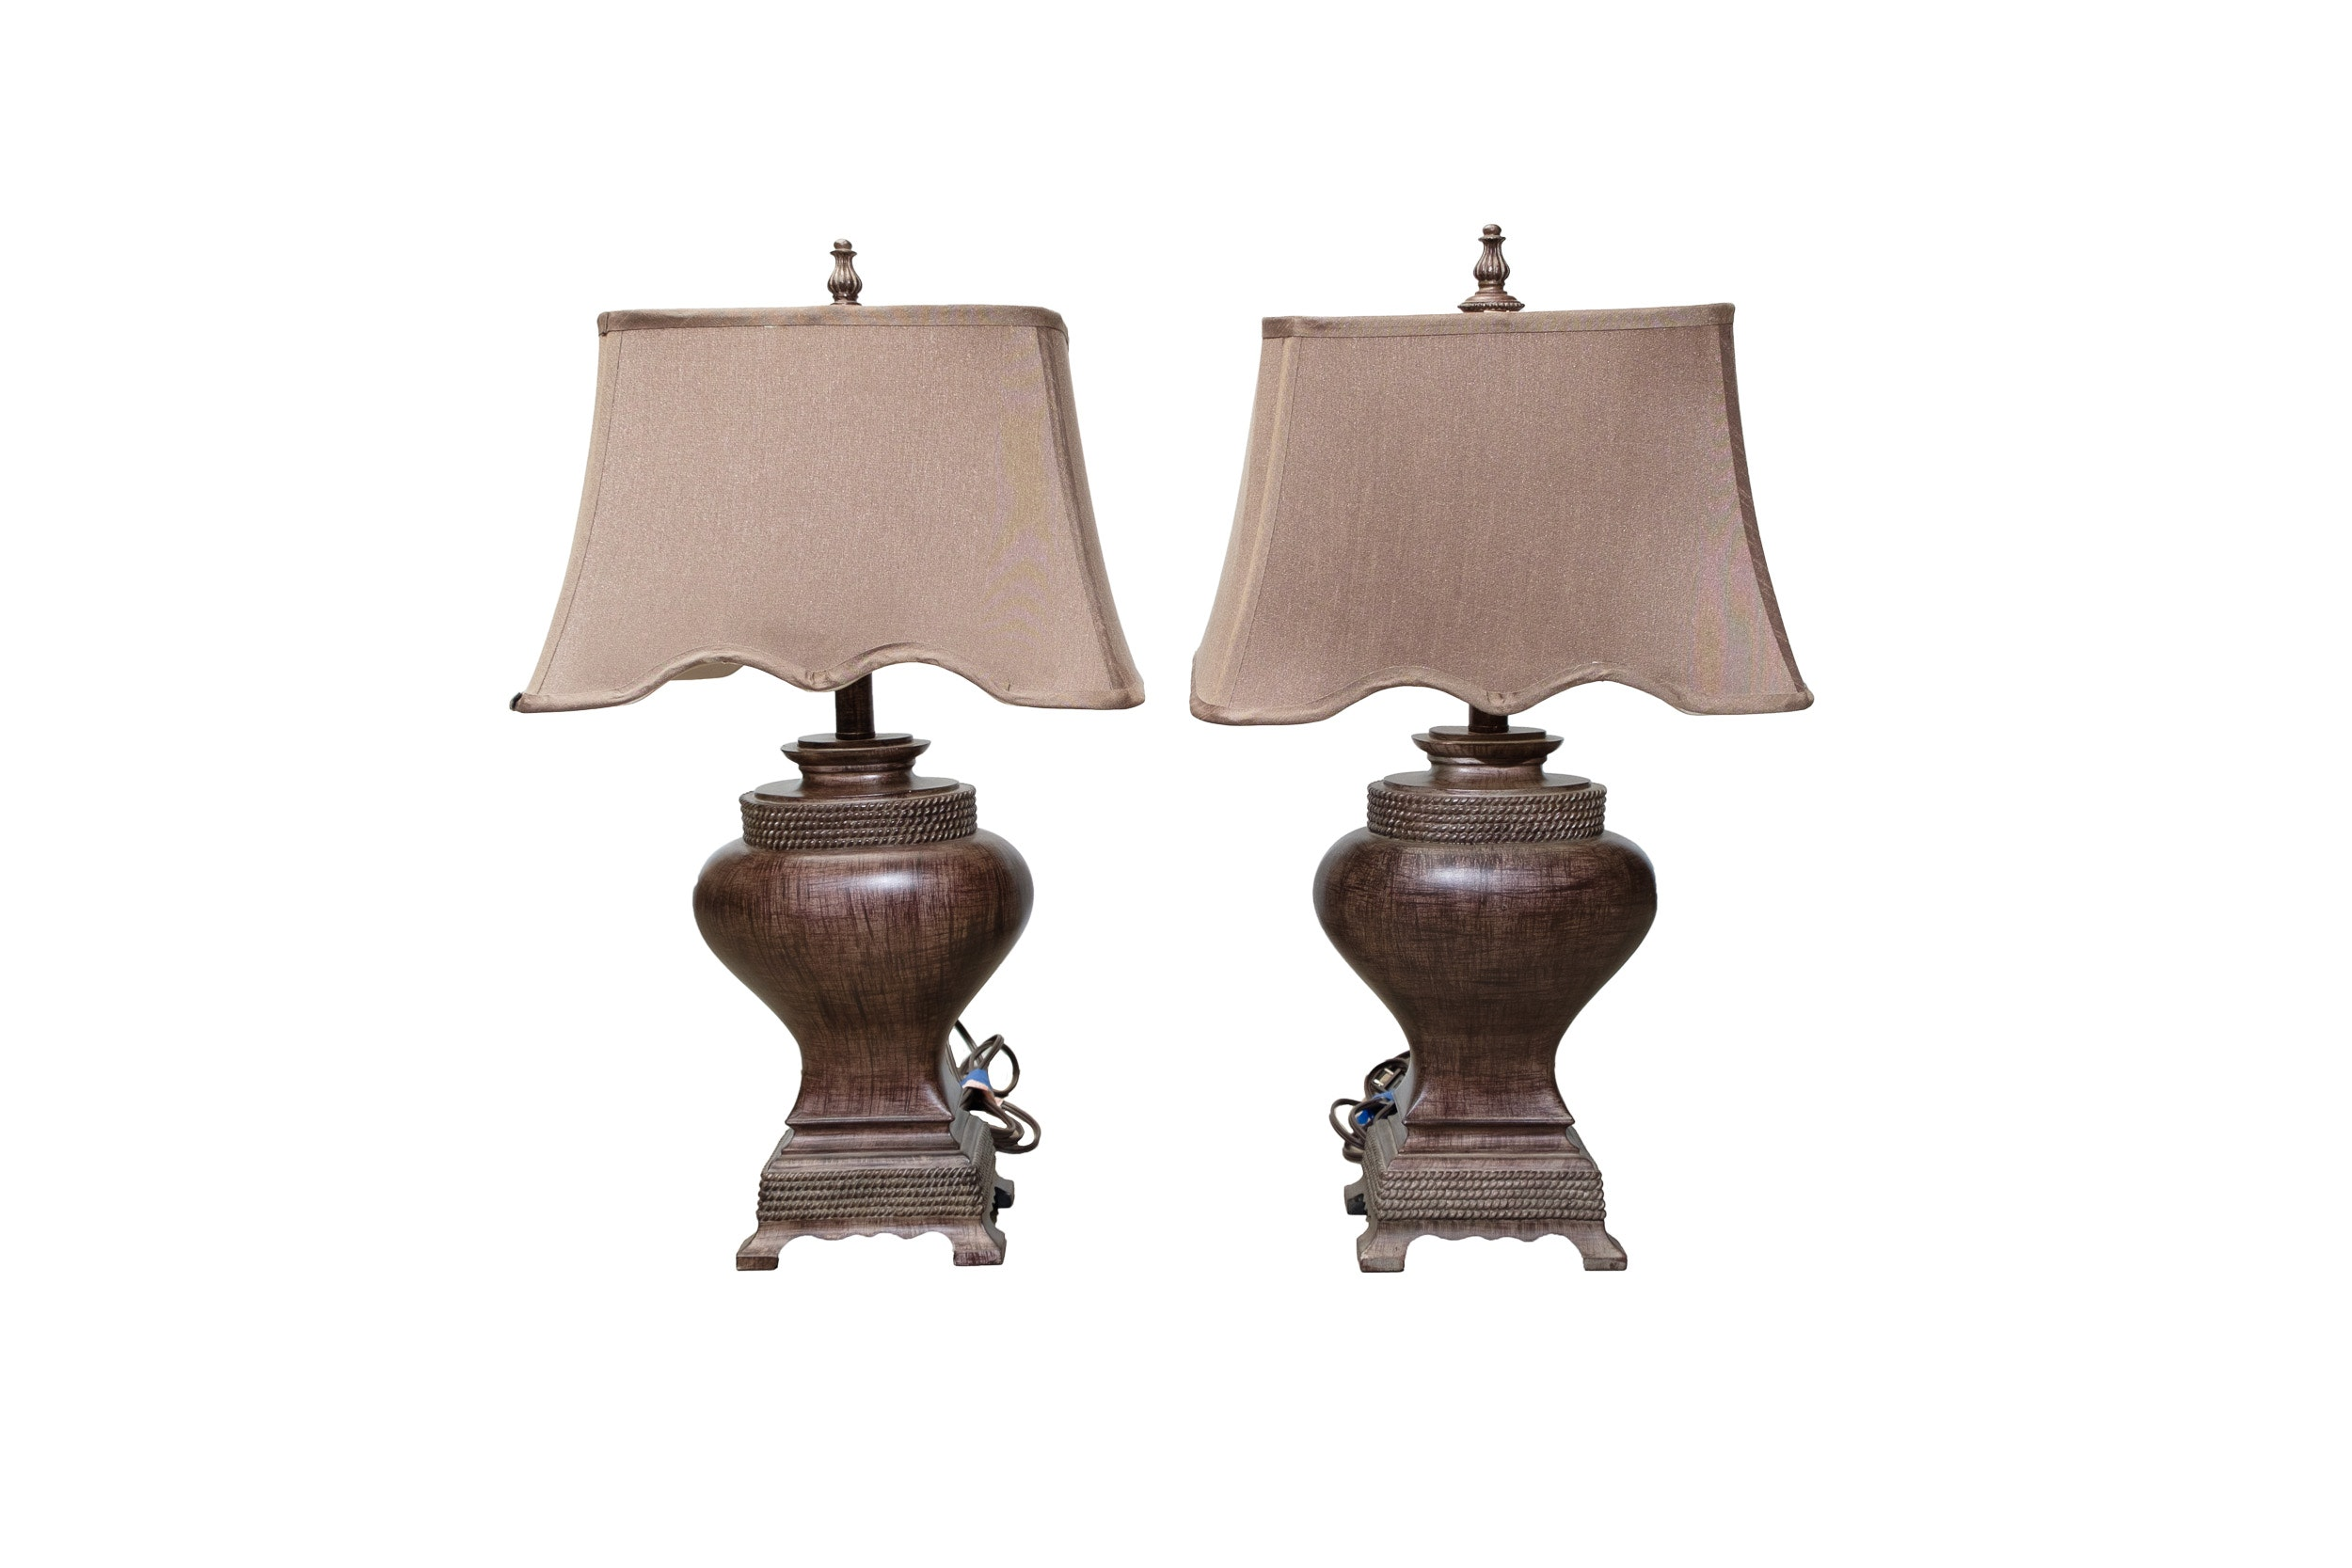 Pair of Ceramic Urn Table Lamps